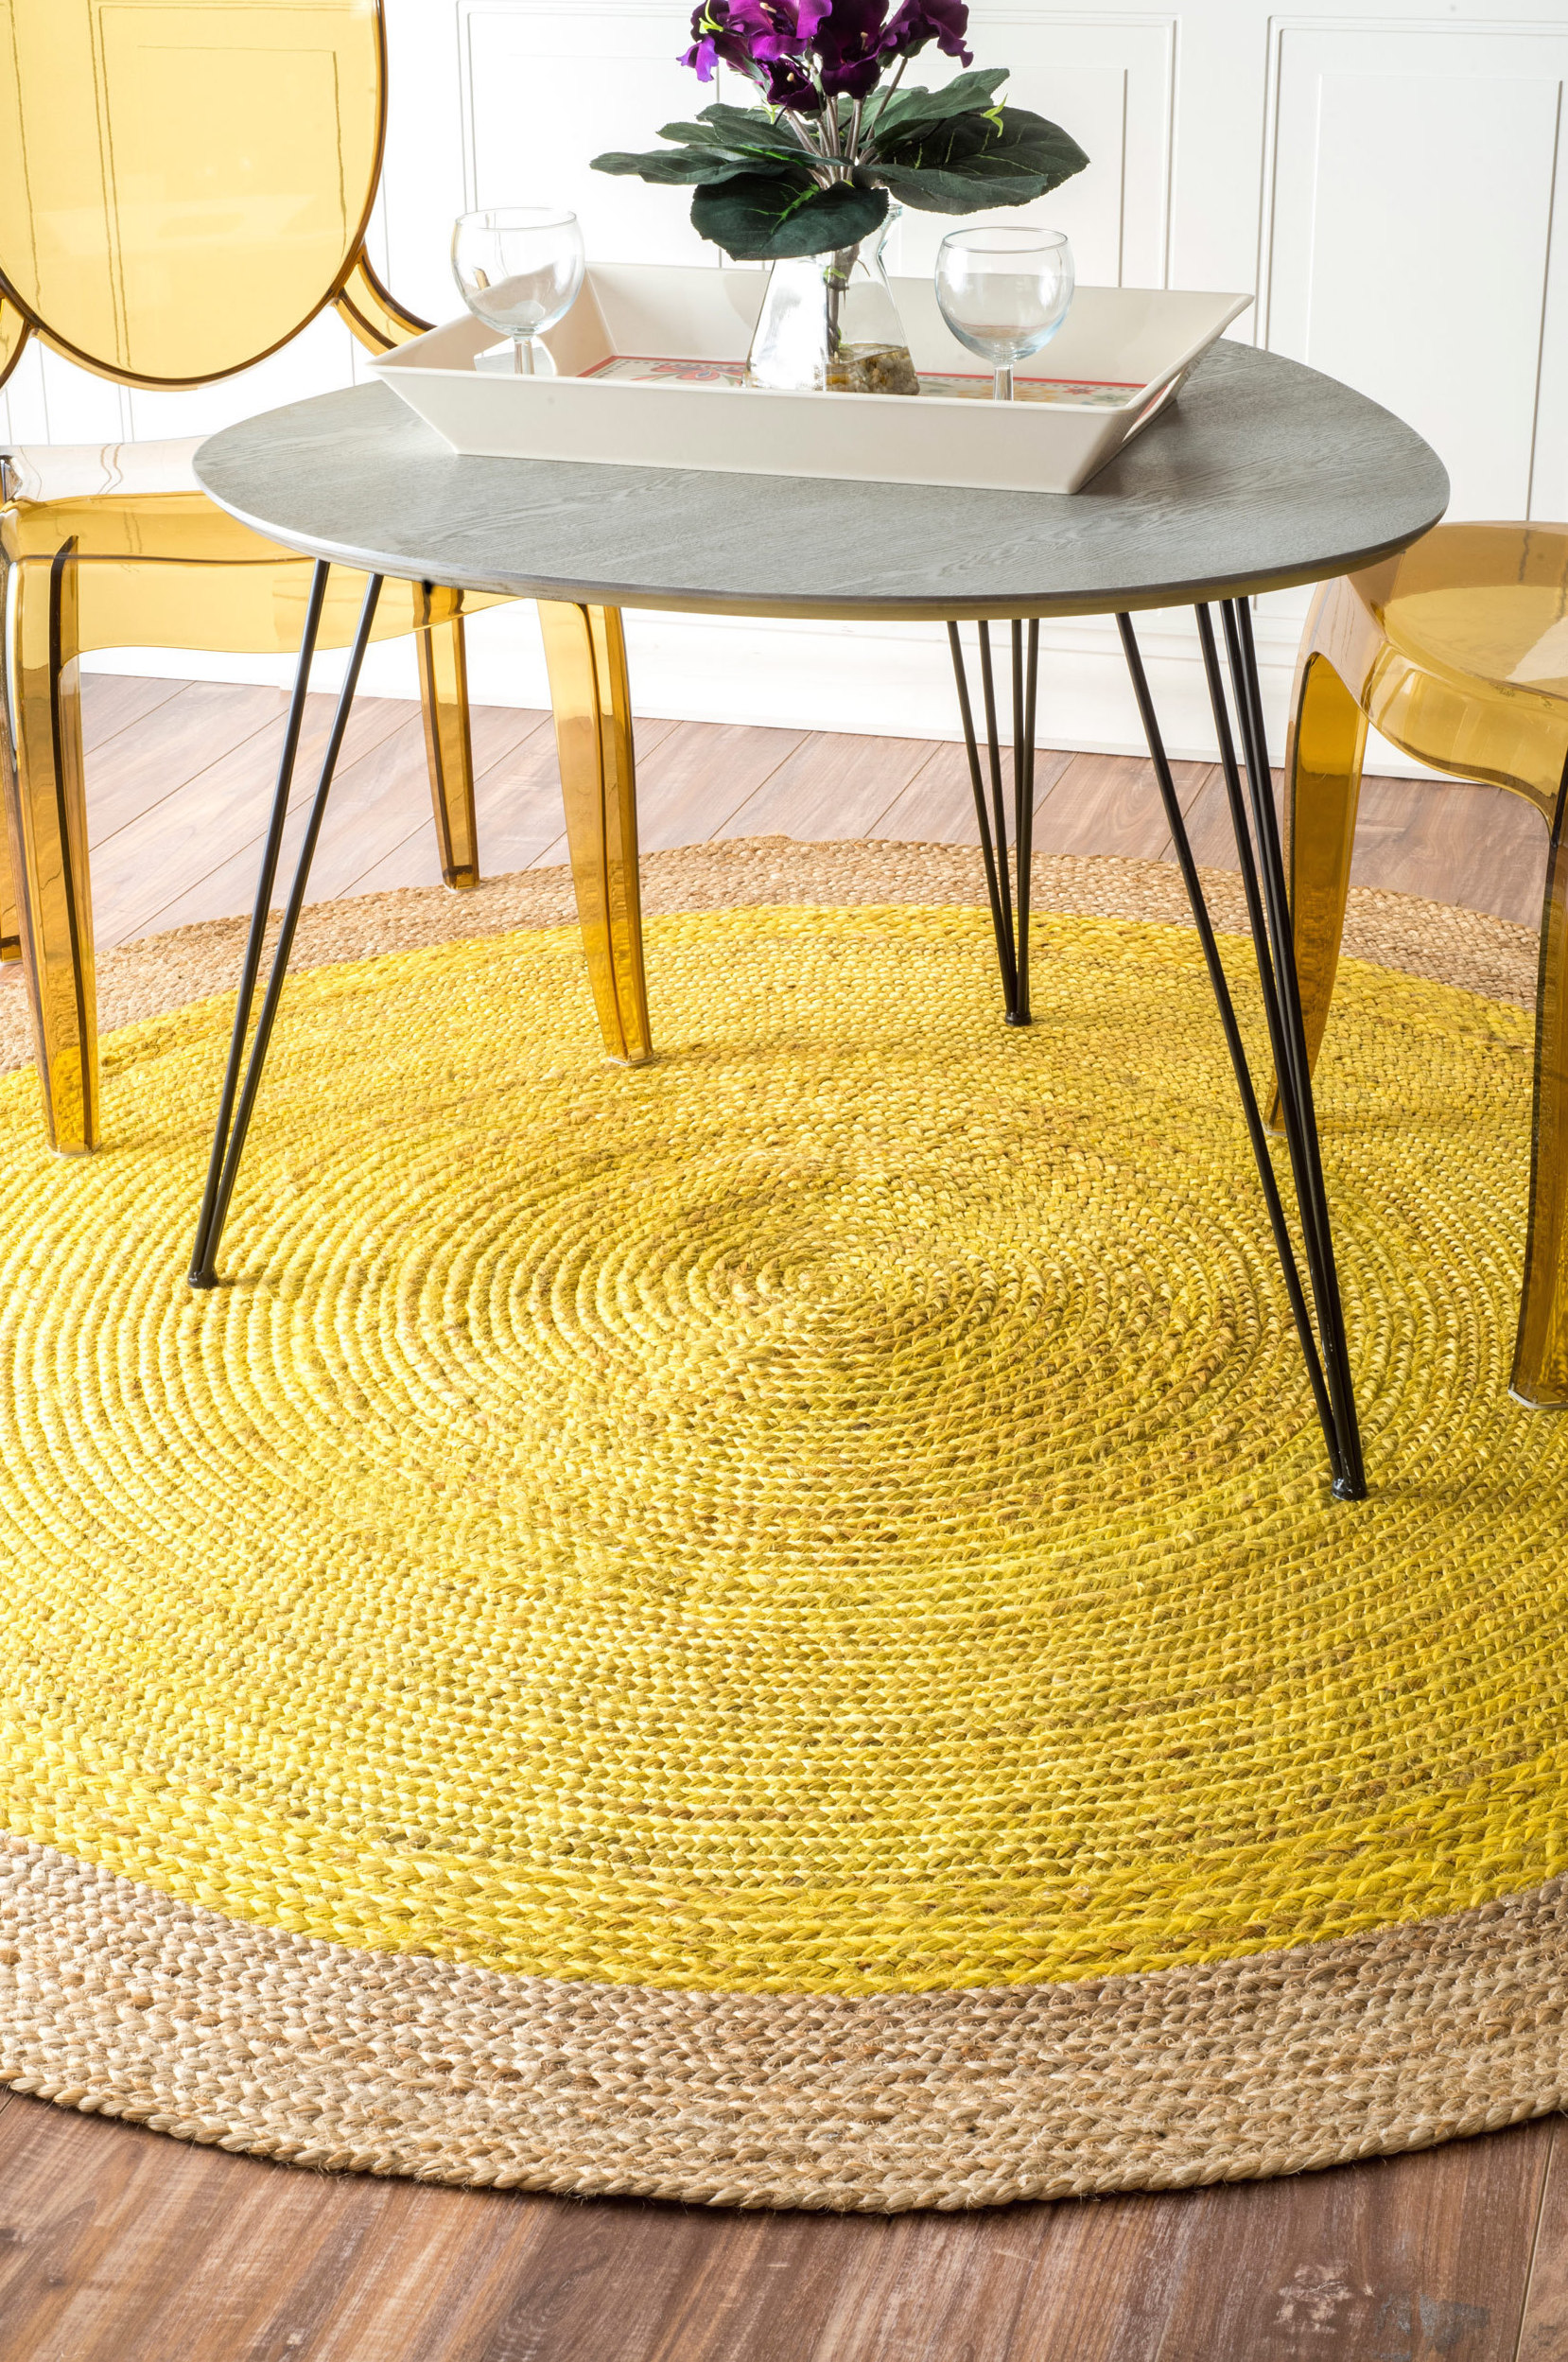 Yellow Rugs Decoration living room rugs Yellow living room rugs decoration, would you dare? Round yellow nuLOOM rug from Overstock